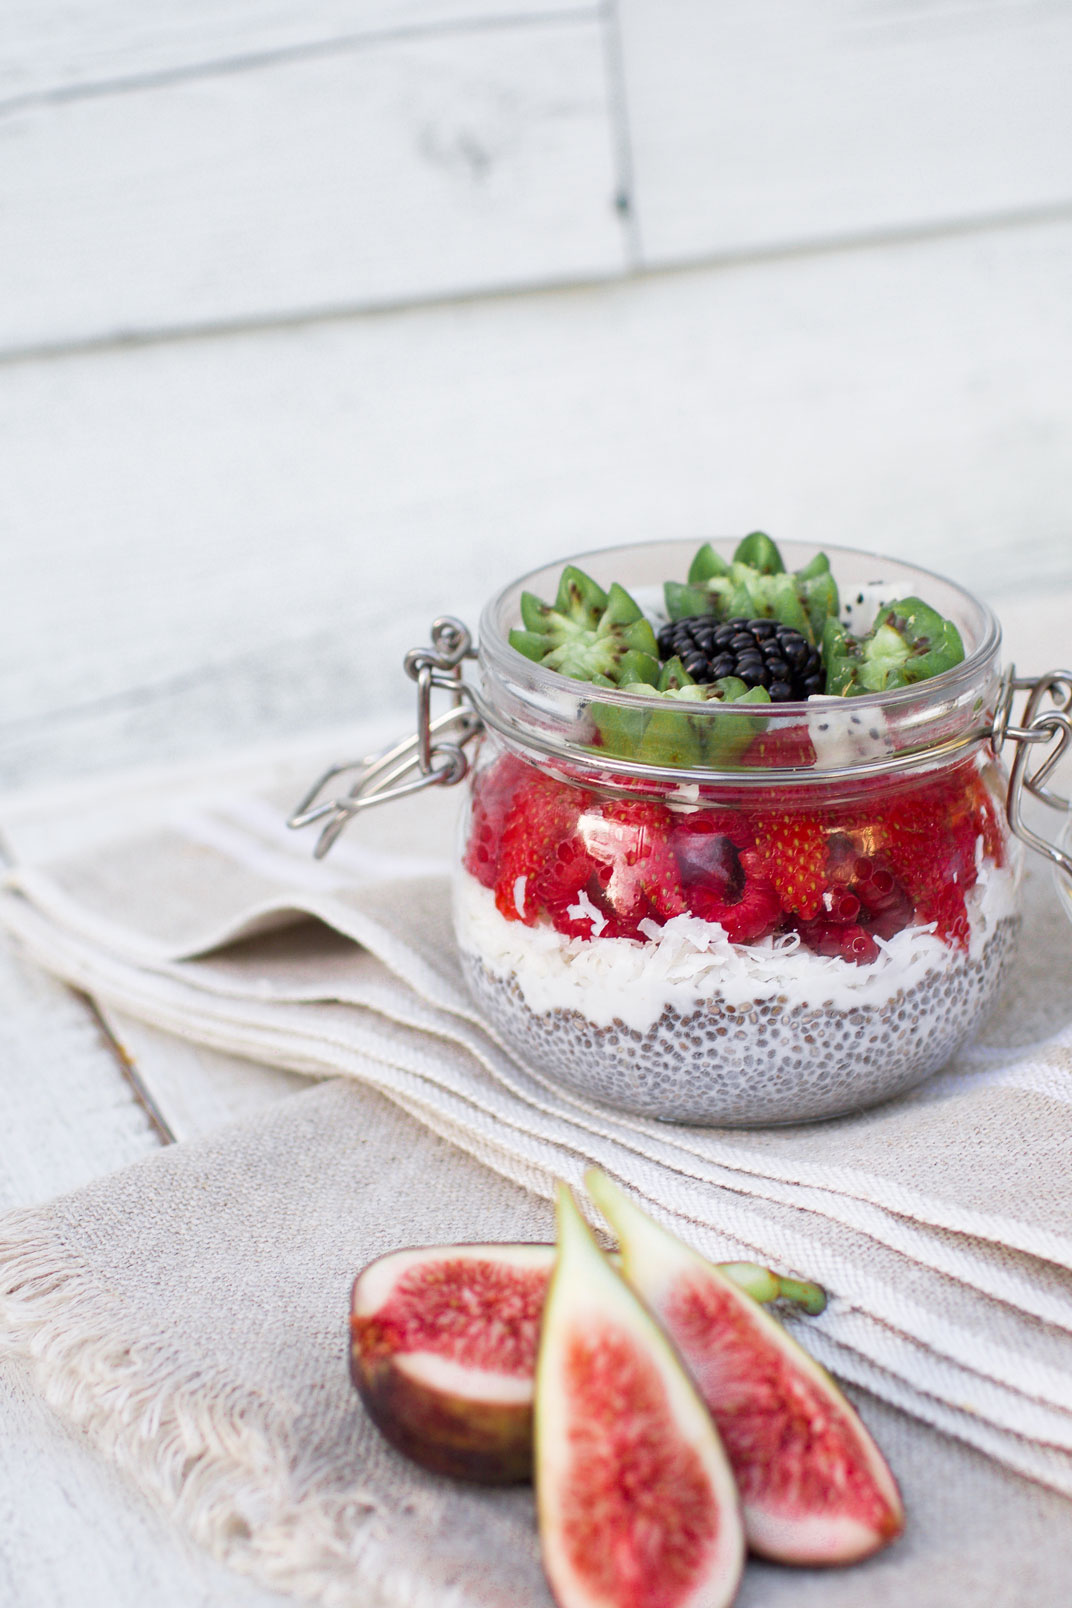 My Protein Coconut Chia Pudding Recipe